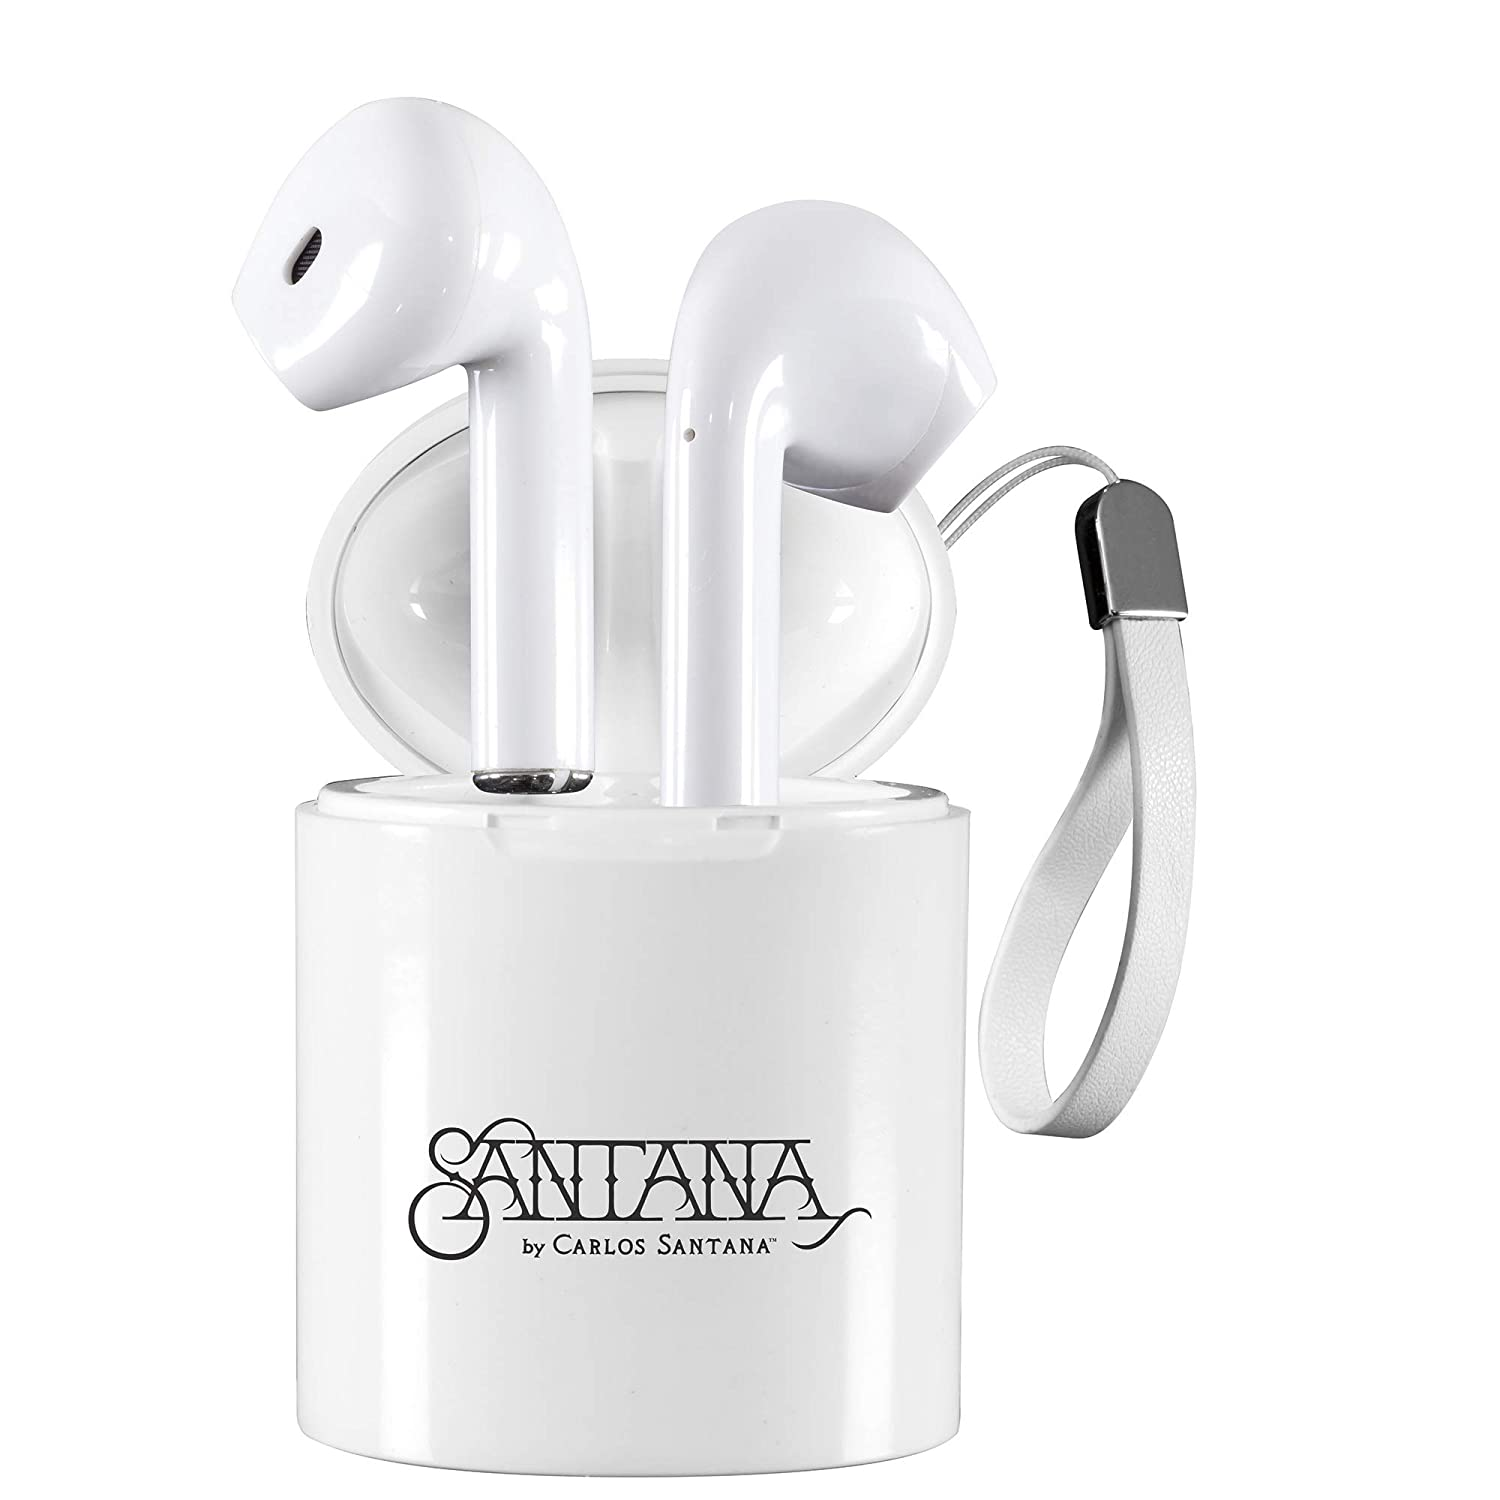 Tango by Carlos Santana TWS True Wireless Earbuds Bluetooth 5.0 Headphones with Charging Case, in-Ear Built-in Mic Bluetooth Deep Bass Stereo Headsets, Noise Cancelling Wireless Earbuds for Sport